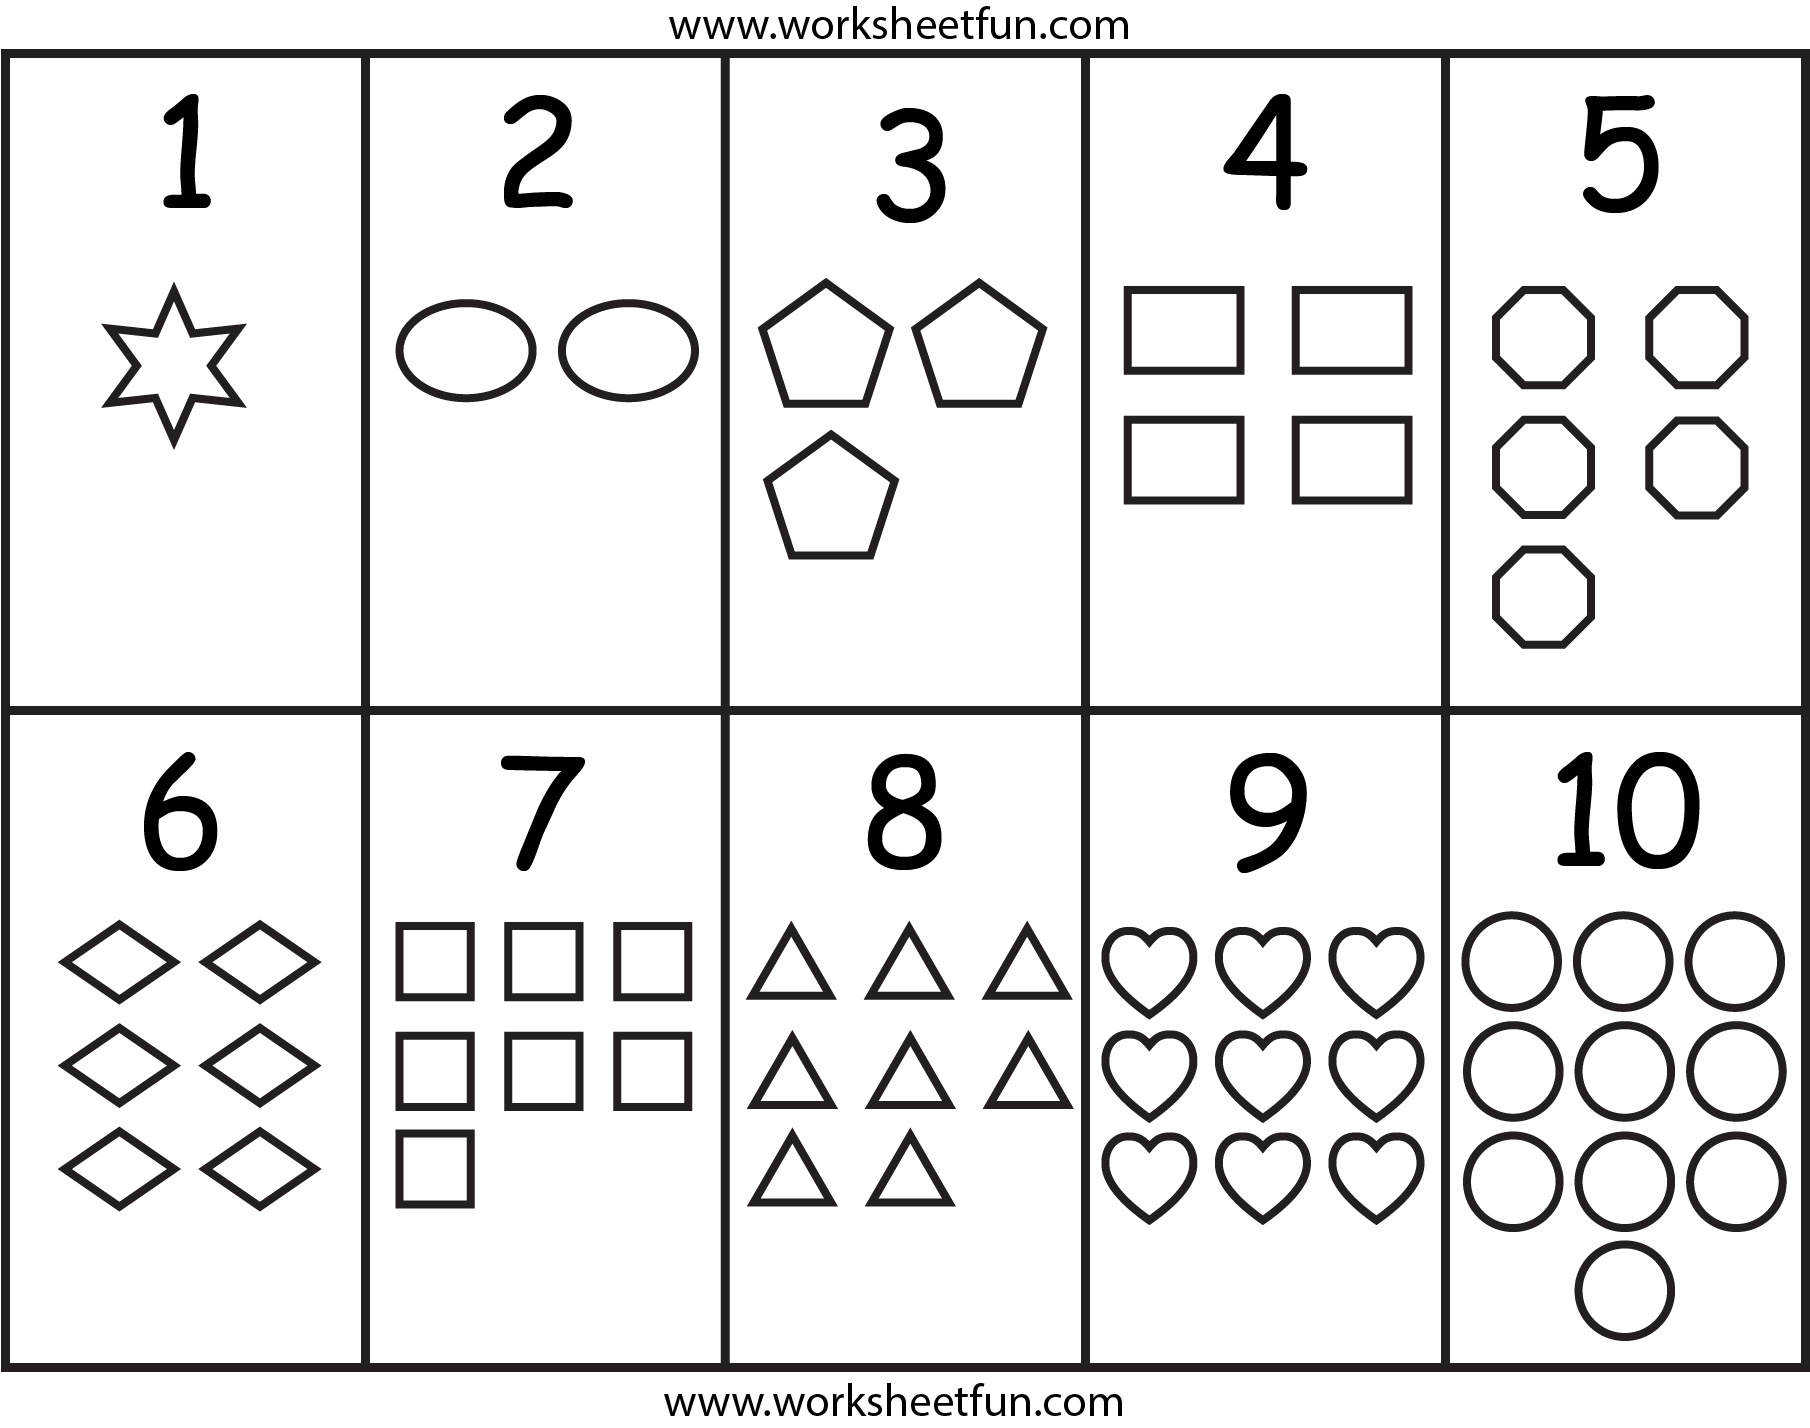 8 Best Images of Number Chart Printable For Preschool ...